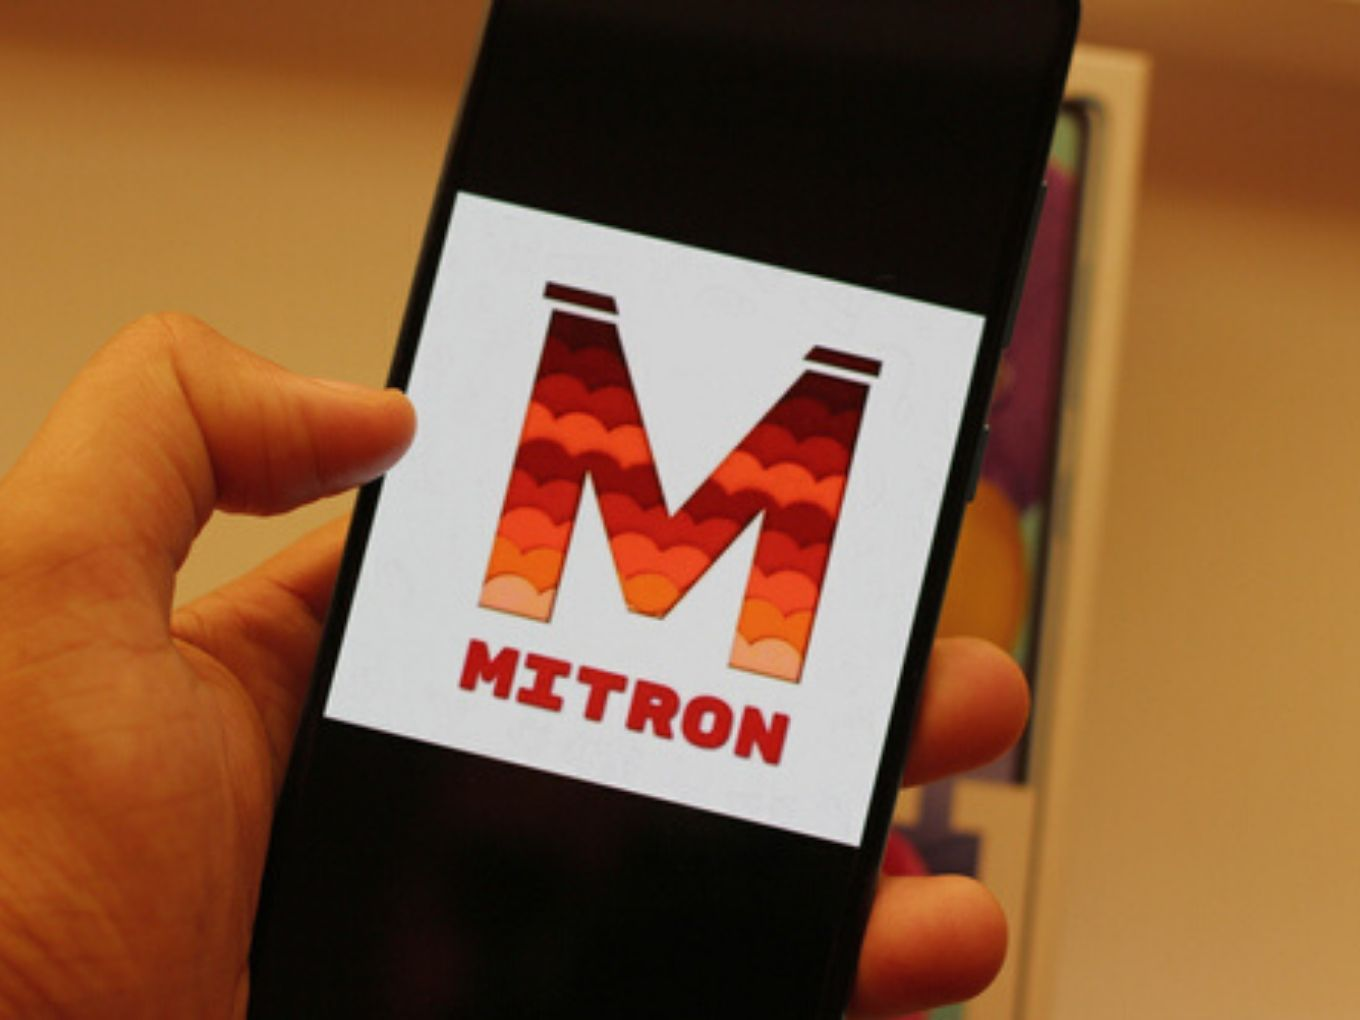 Mitron TV app back on Google Play Store after design change